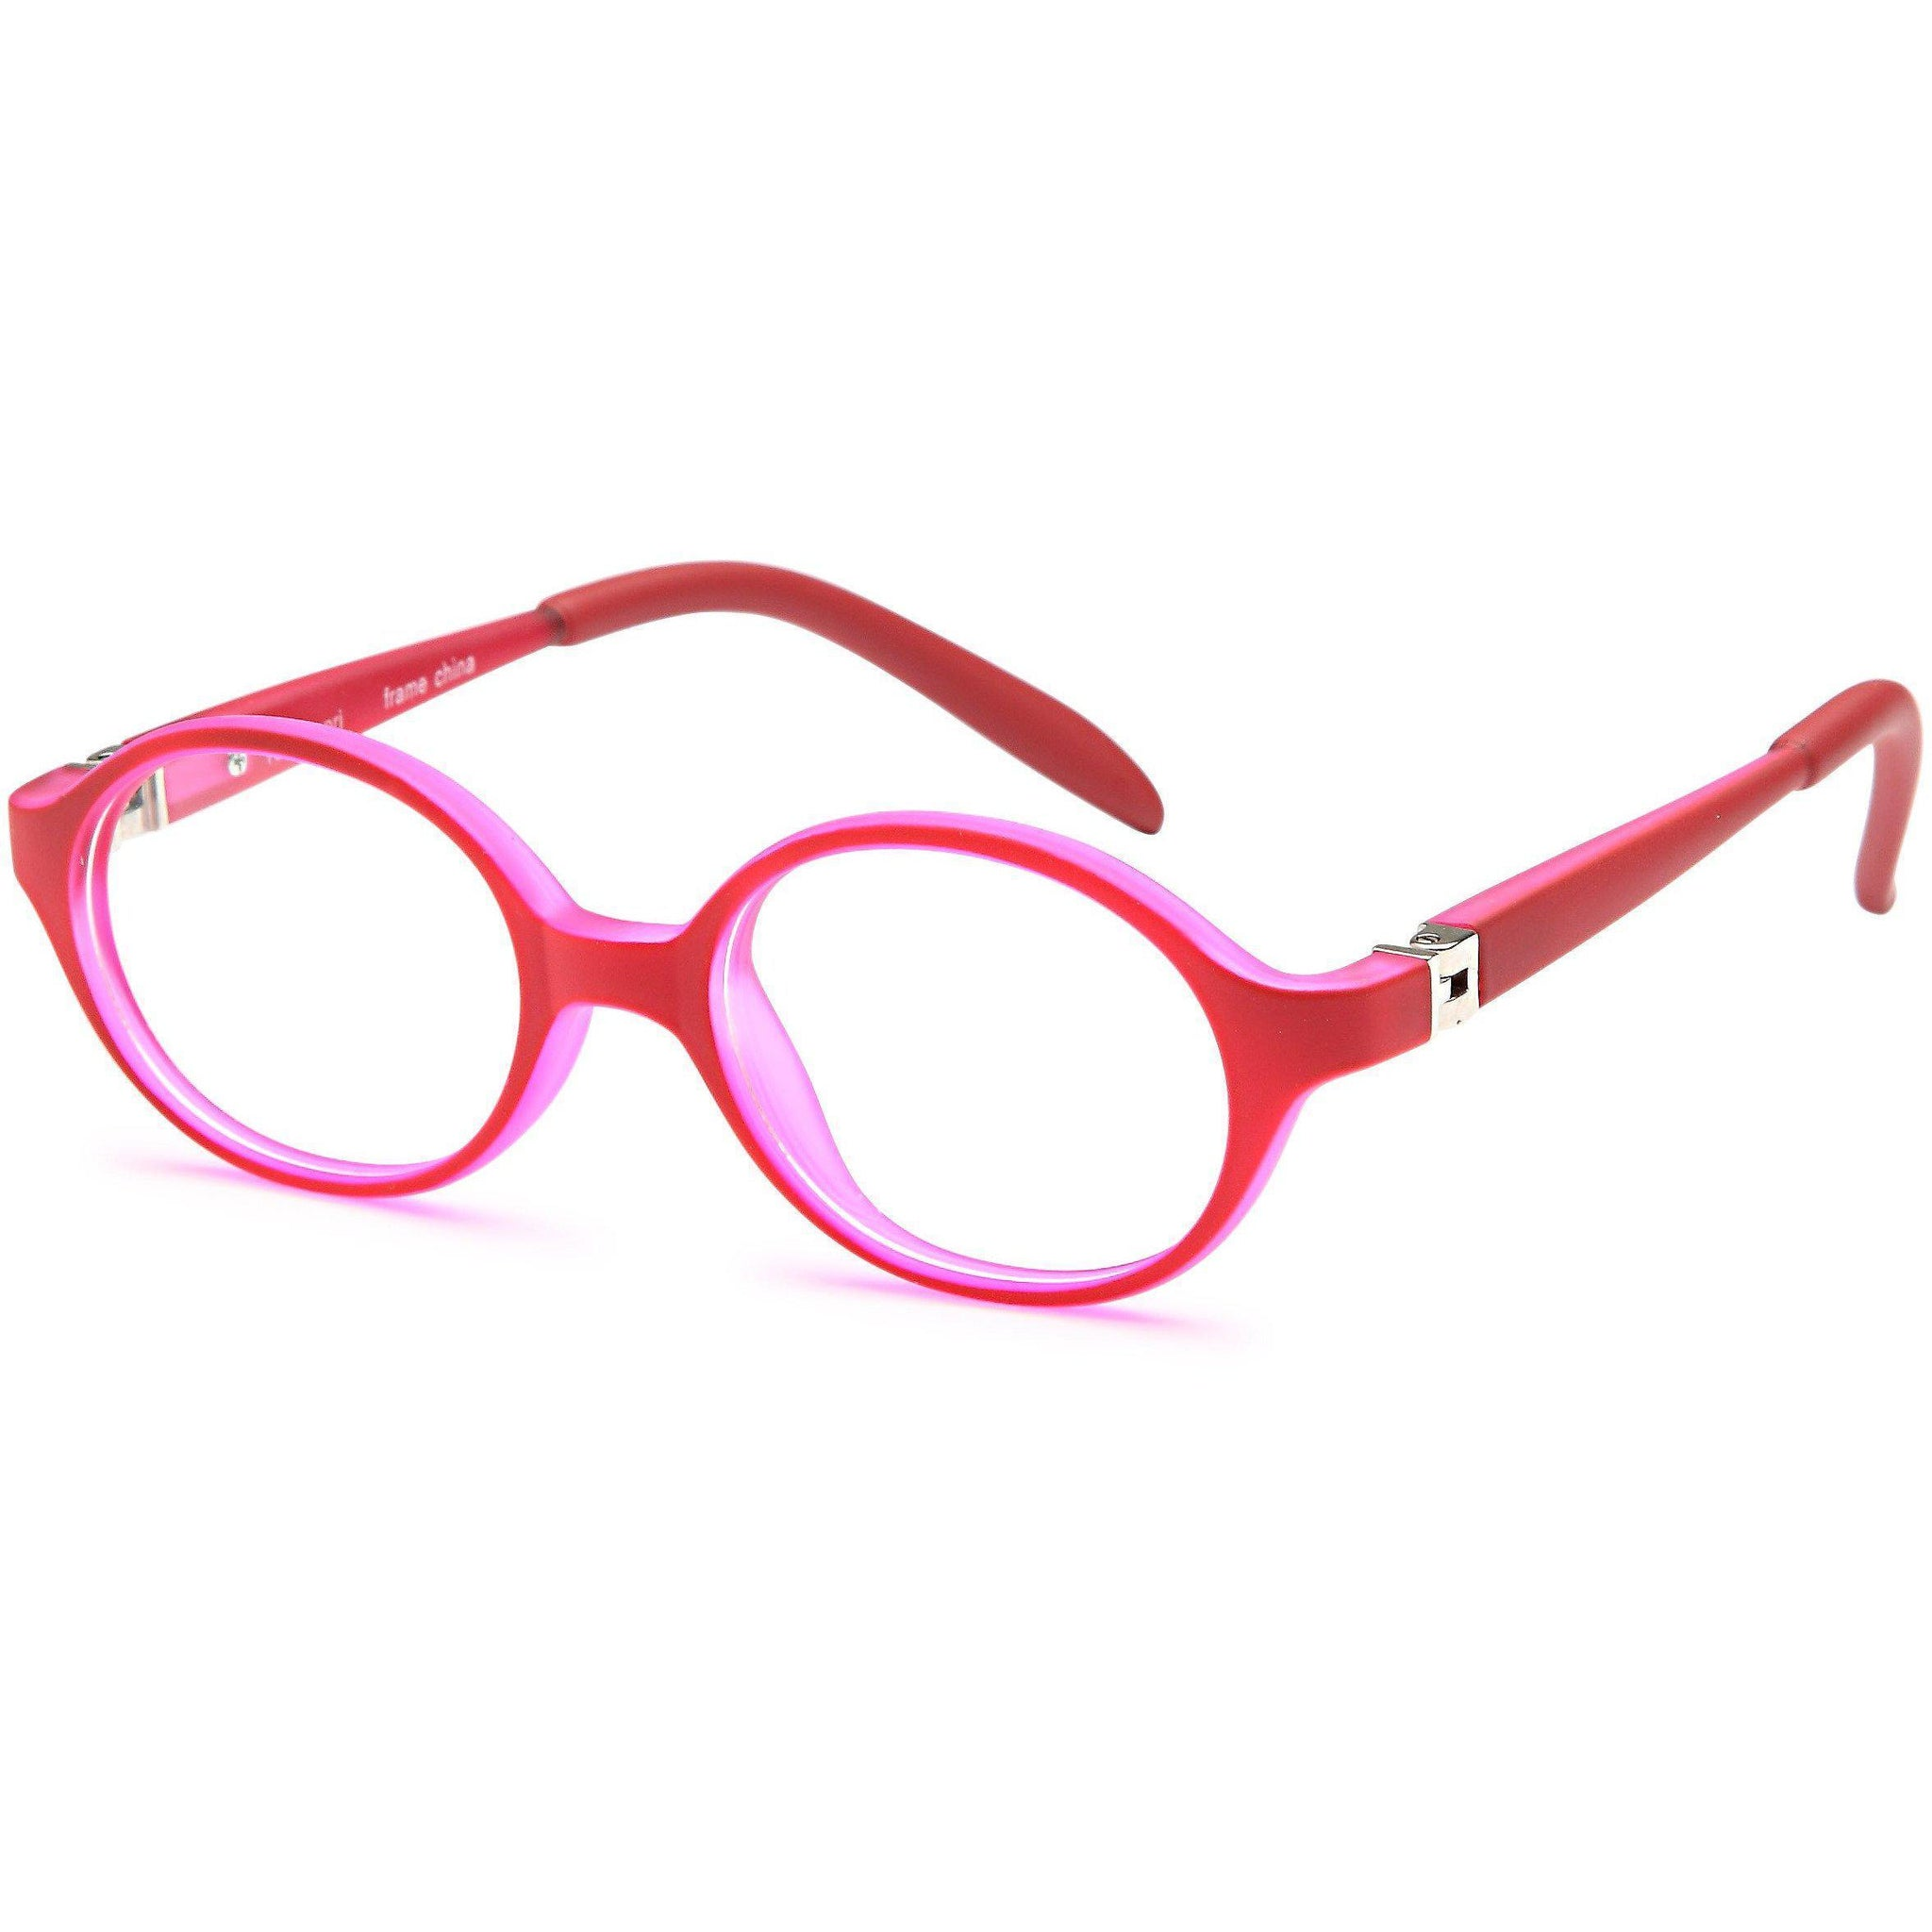 OnTrend Prescription Glasses T 27 Eyeglasses Frames